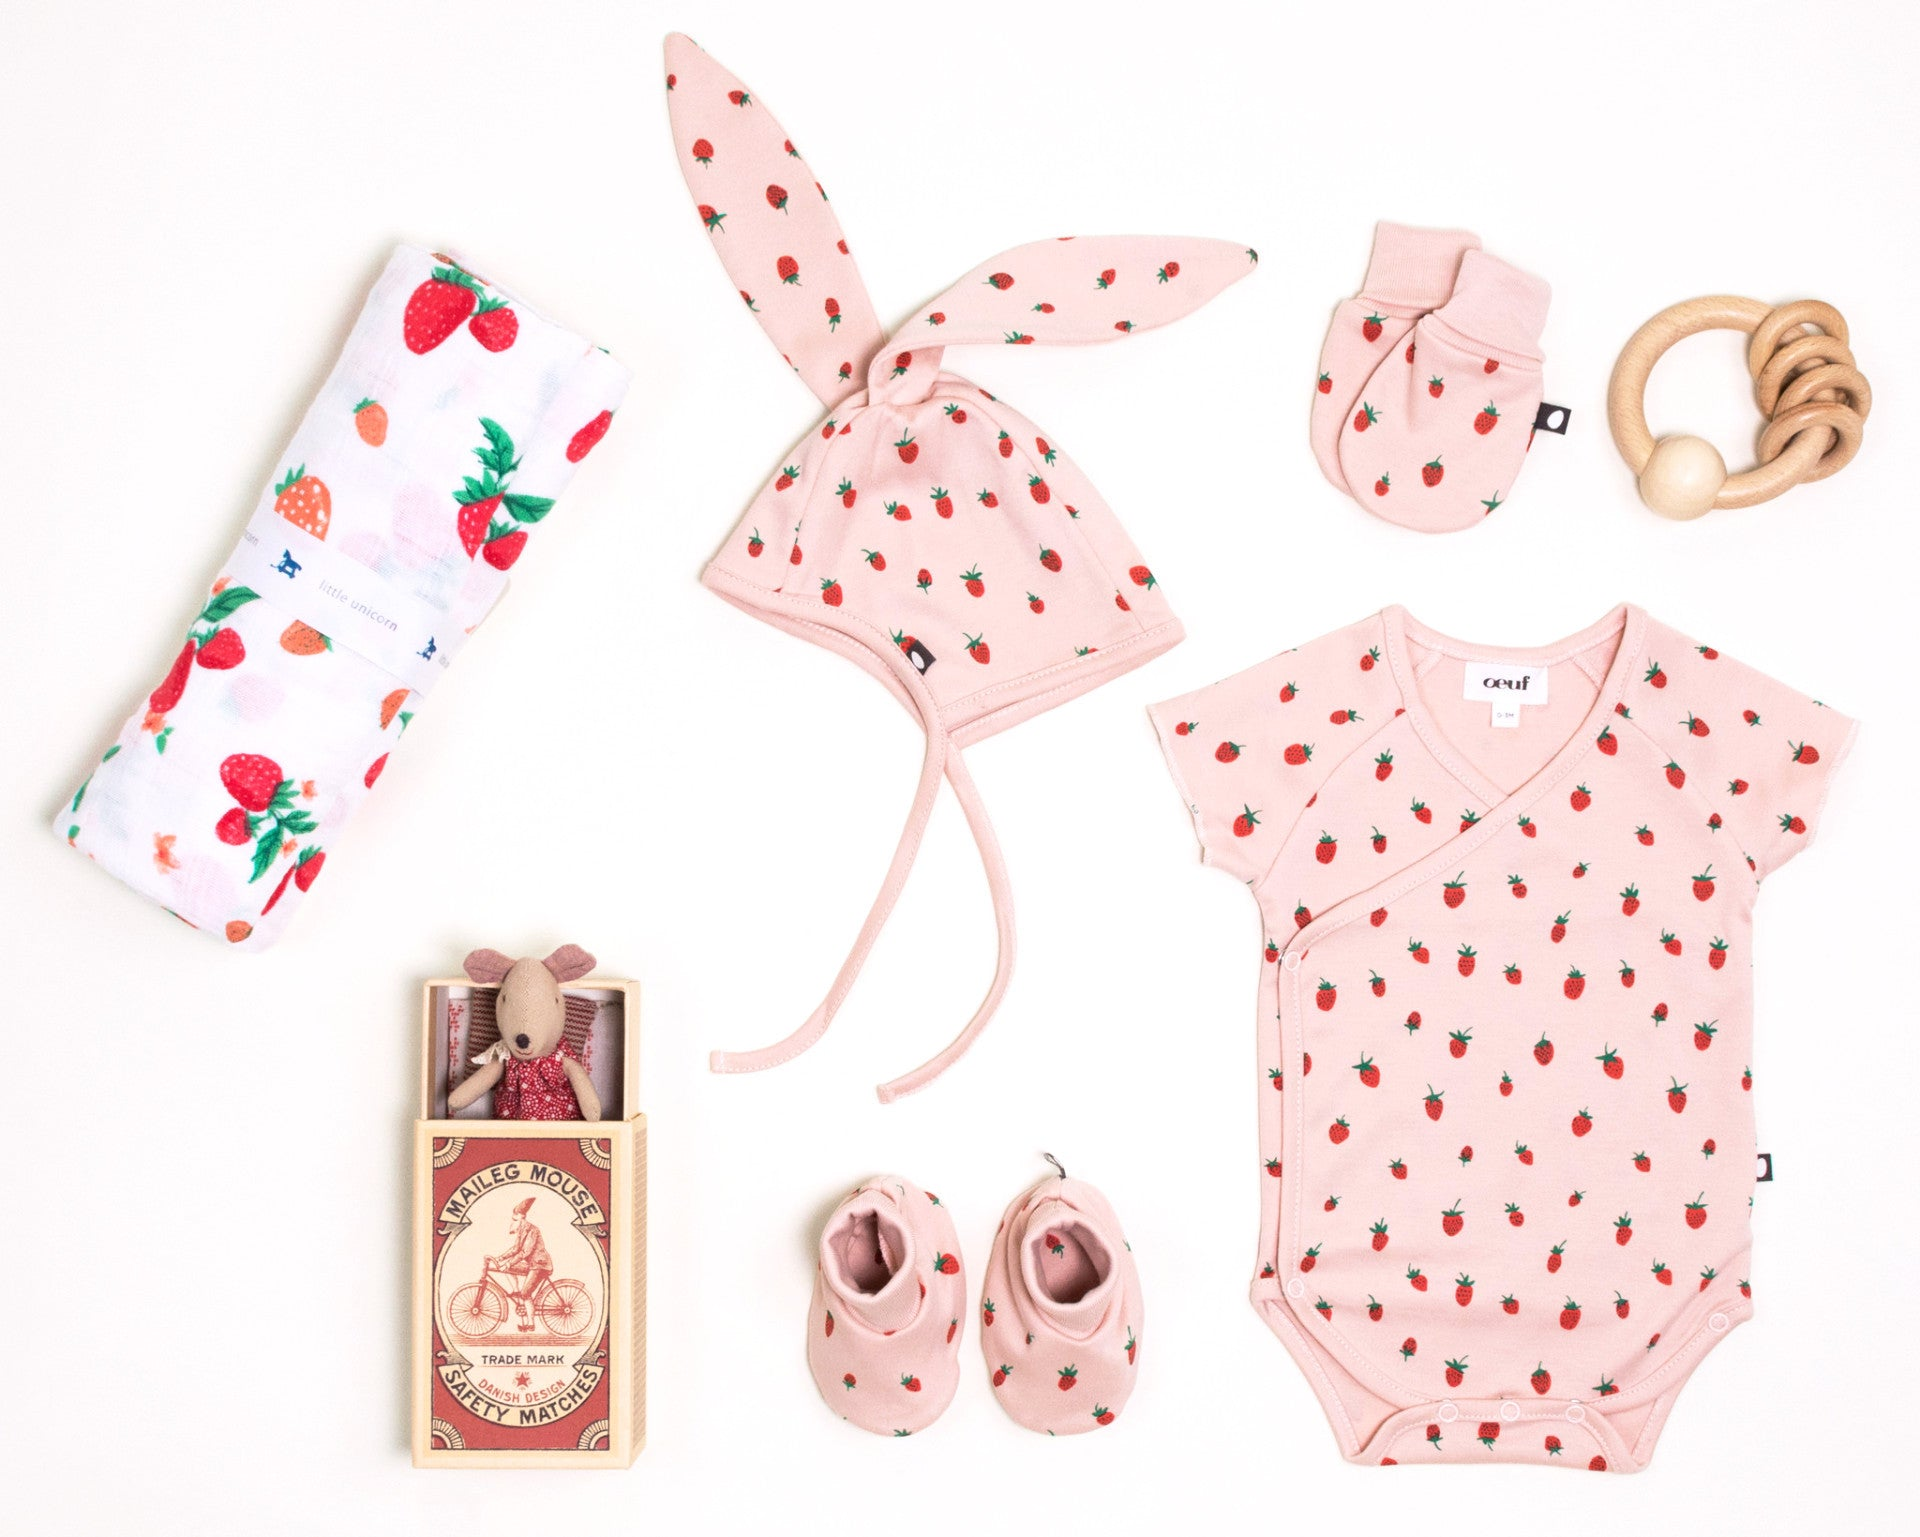 https://bonjourbabybaskets.com/collections/oeuf/products/jumper-strawberry